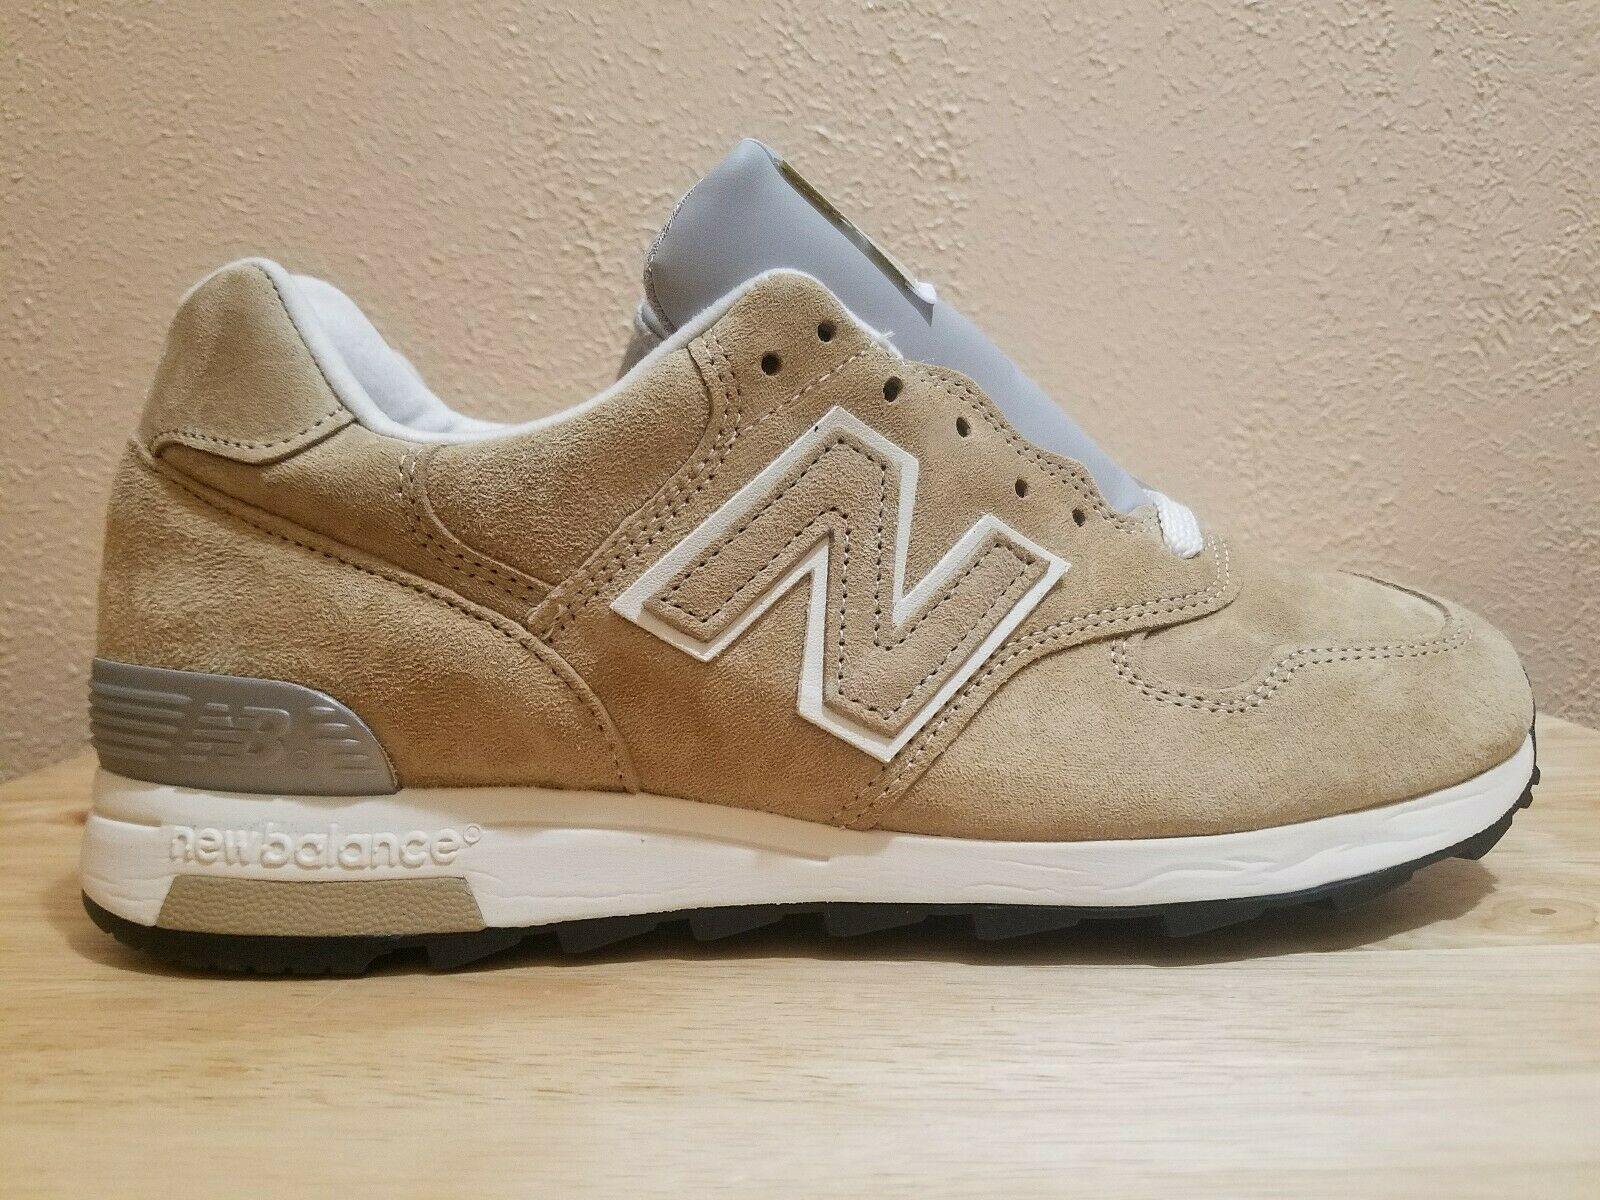 New Balance 1400 Suede Running shoes Made in USA Khaki   White Men's Size 8